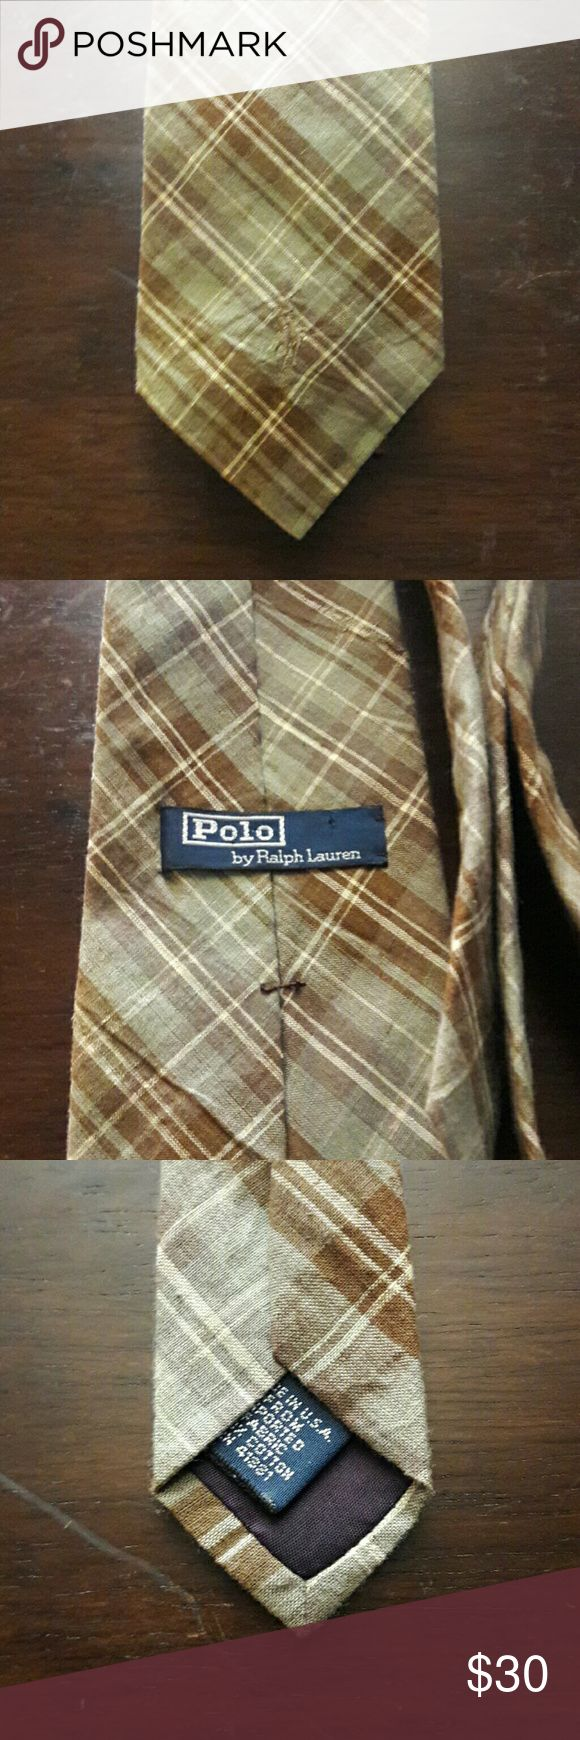 POLO by Ralph Lauren Necktie This awesome POLO by Ralph Lauren necktie is brown, light green and cream. It is made of 100 % cotton. Classic, contemporary, stylish, timeless. In great condition. Polo by Ralph Lauren Accessories Ties